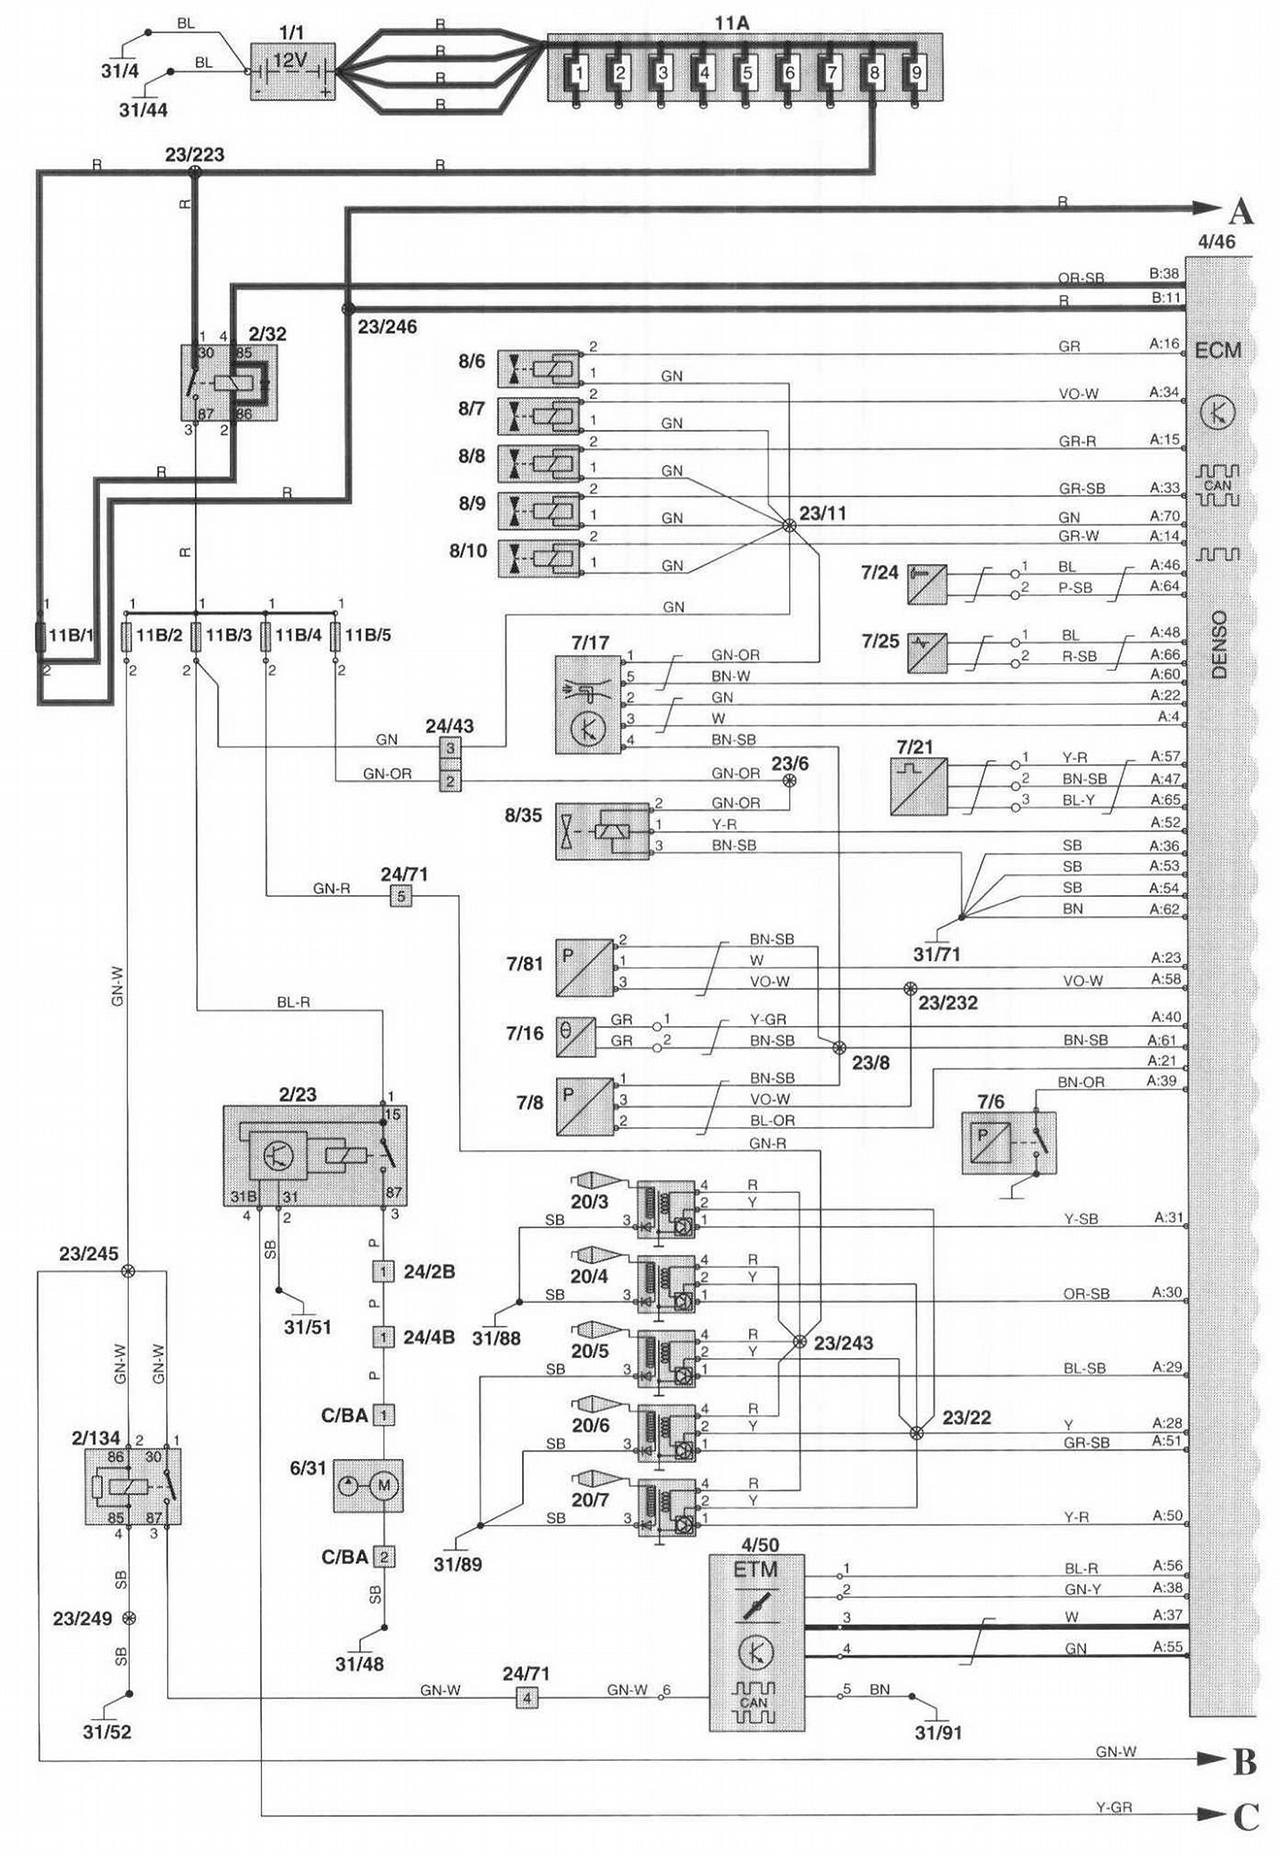 Volvo vnl alternator wiring diagrams ford f